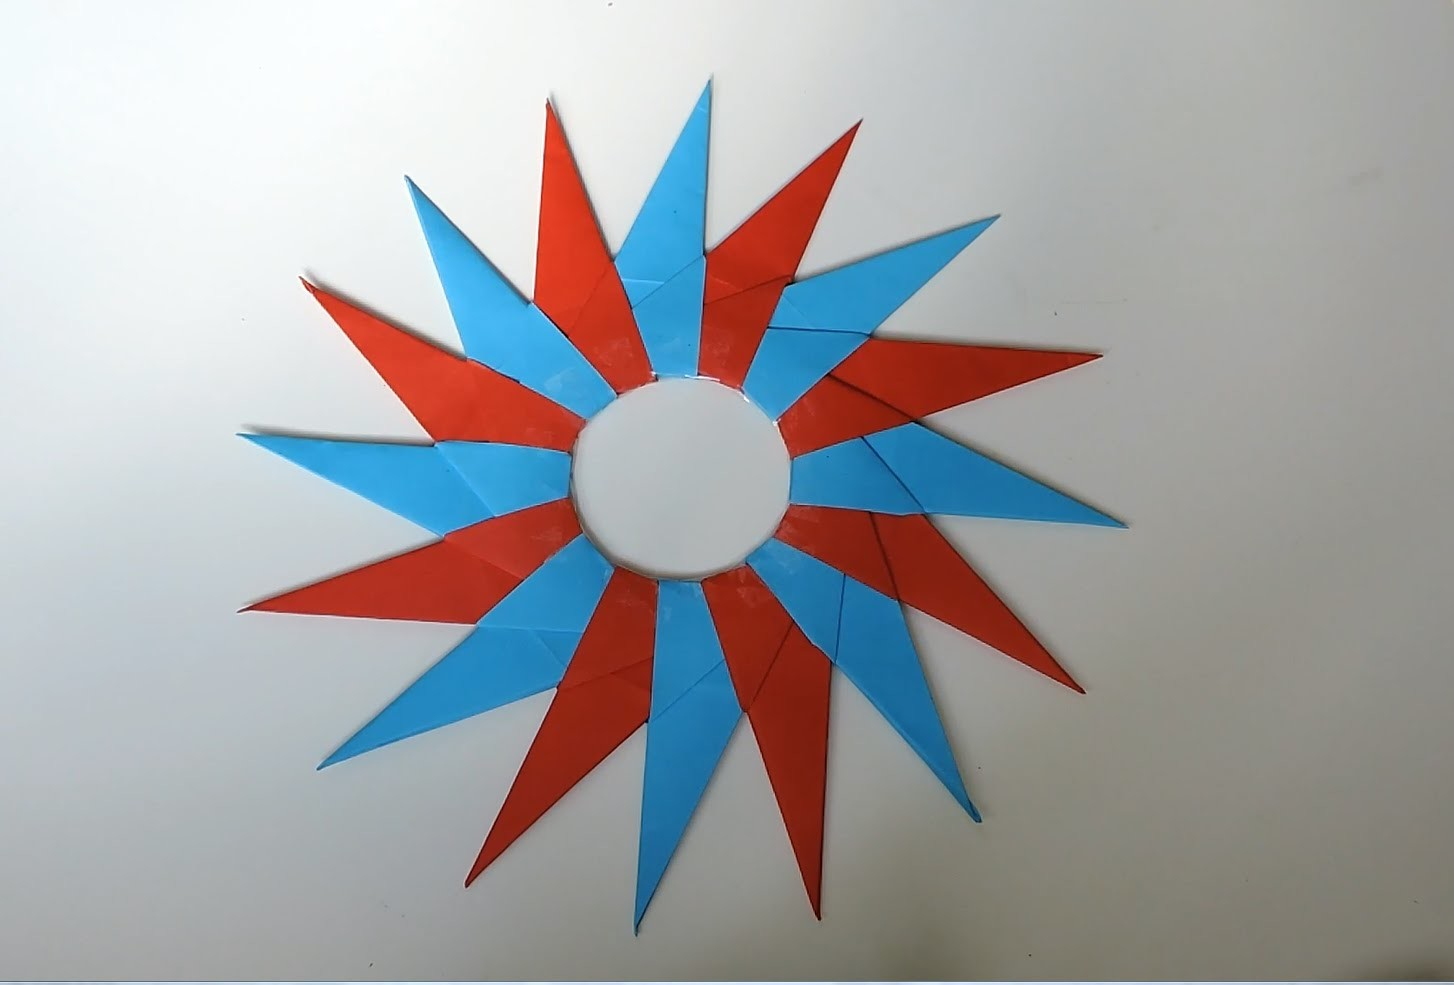 How To Make A 16-Pointed Ninja Star Out Of Paper. (Origami)